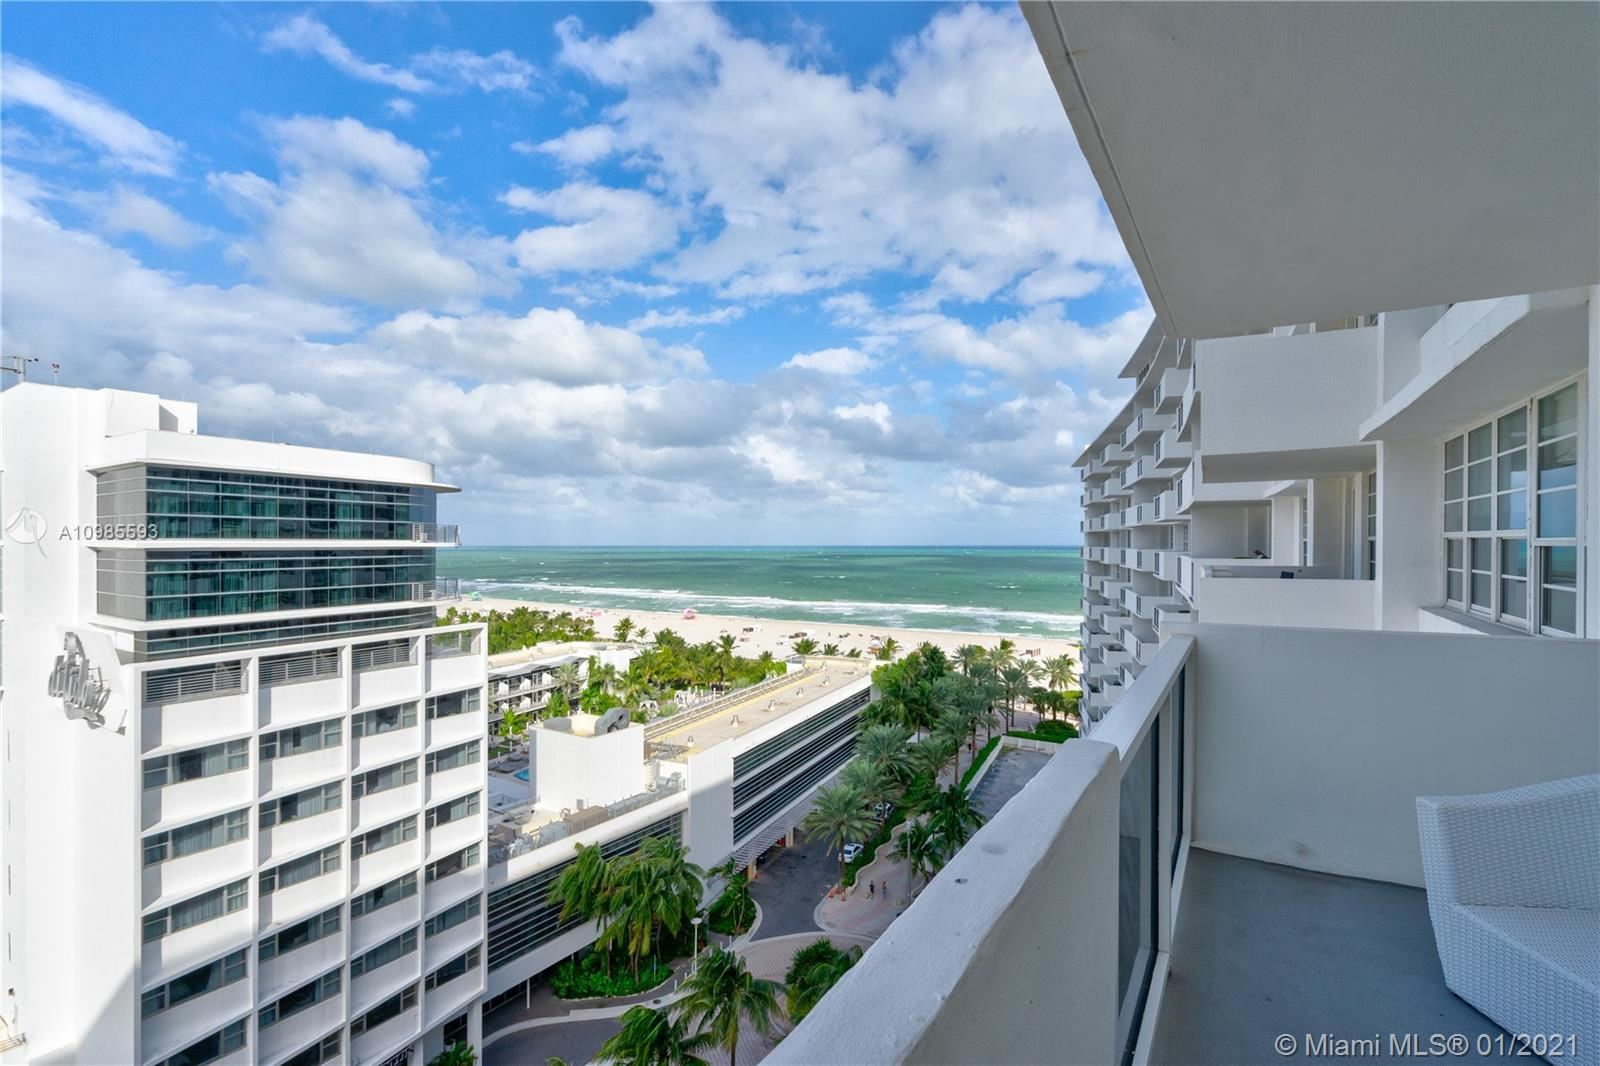 100 Lincoln Rd #1202, Miami Beach, FL 33139 - #: A10985593